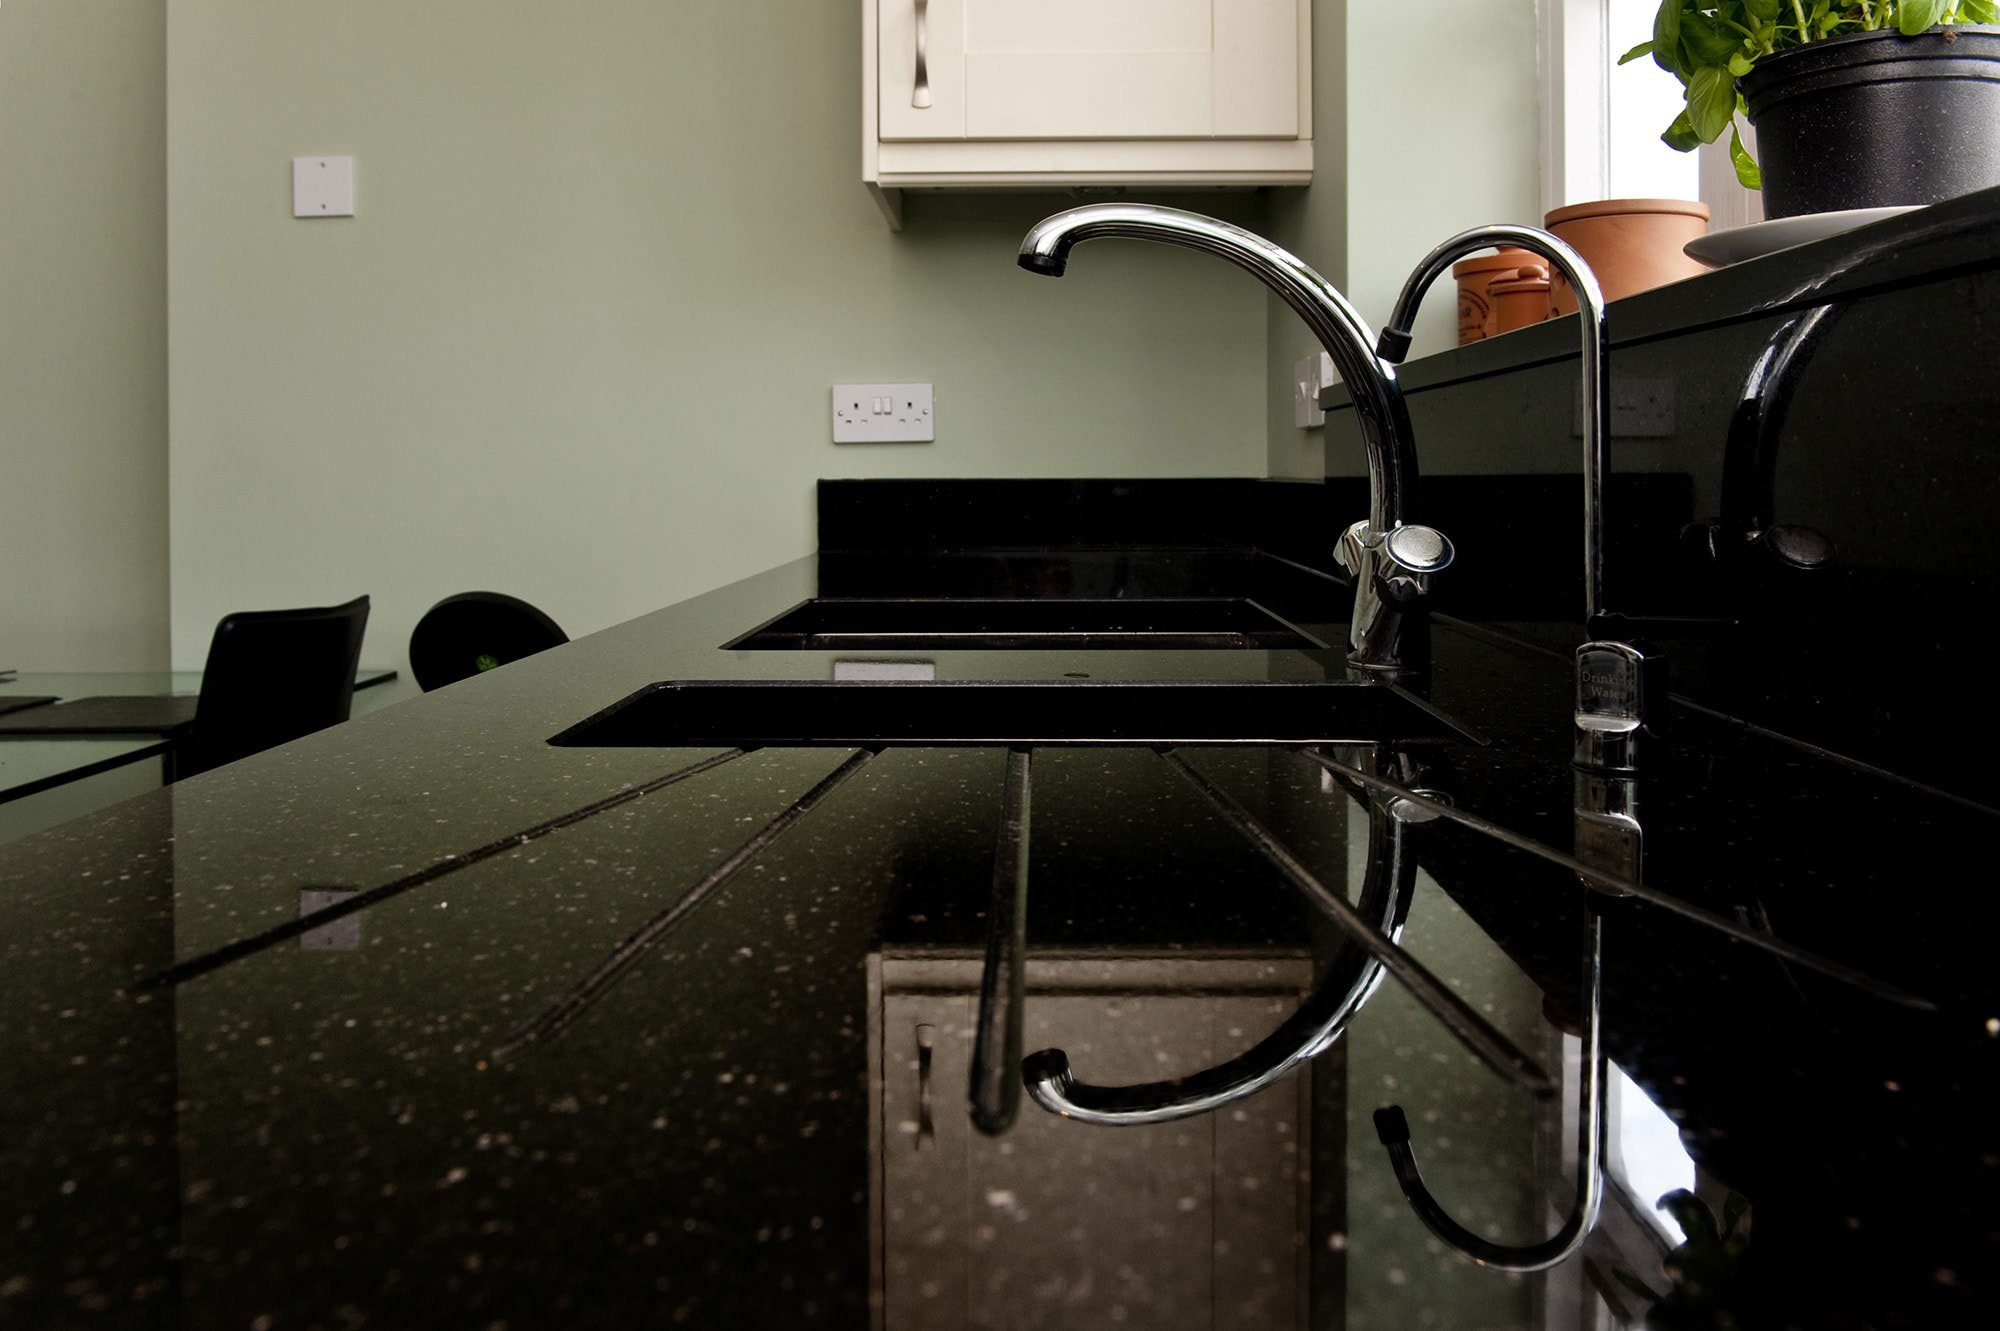 black-galaxy-granite-south-croydon-104551-a-draiange-grooves-min